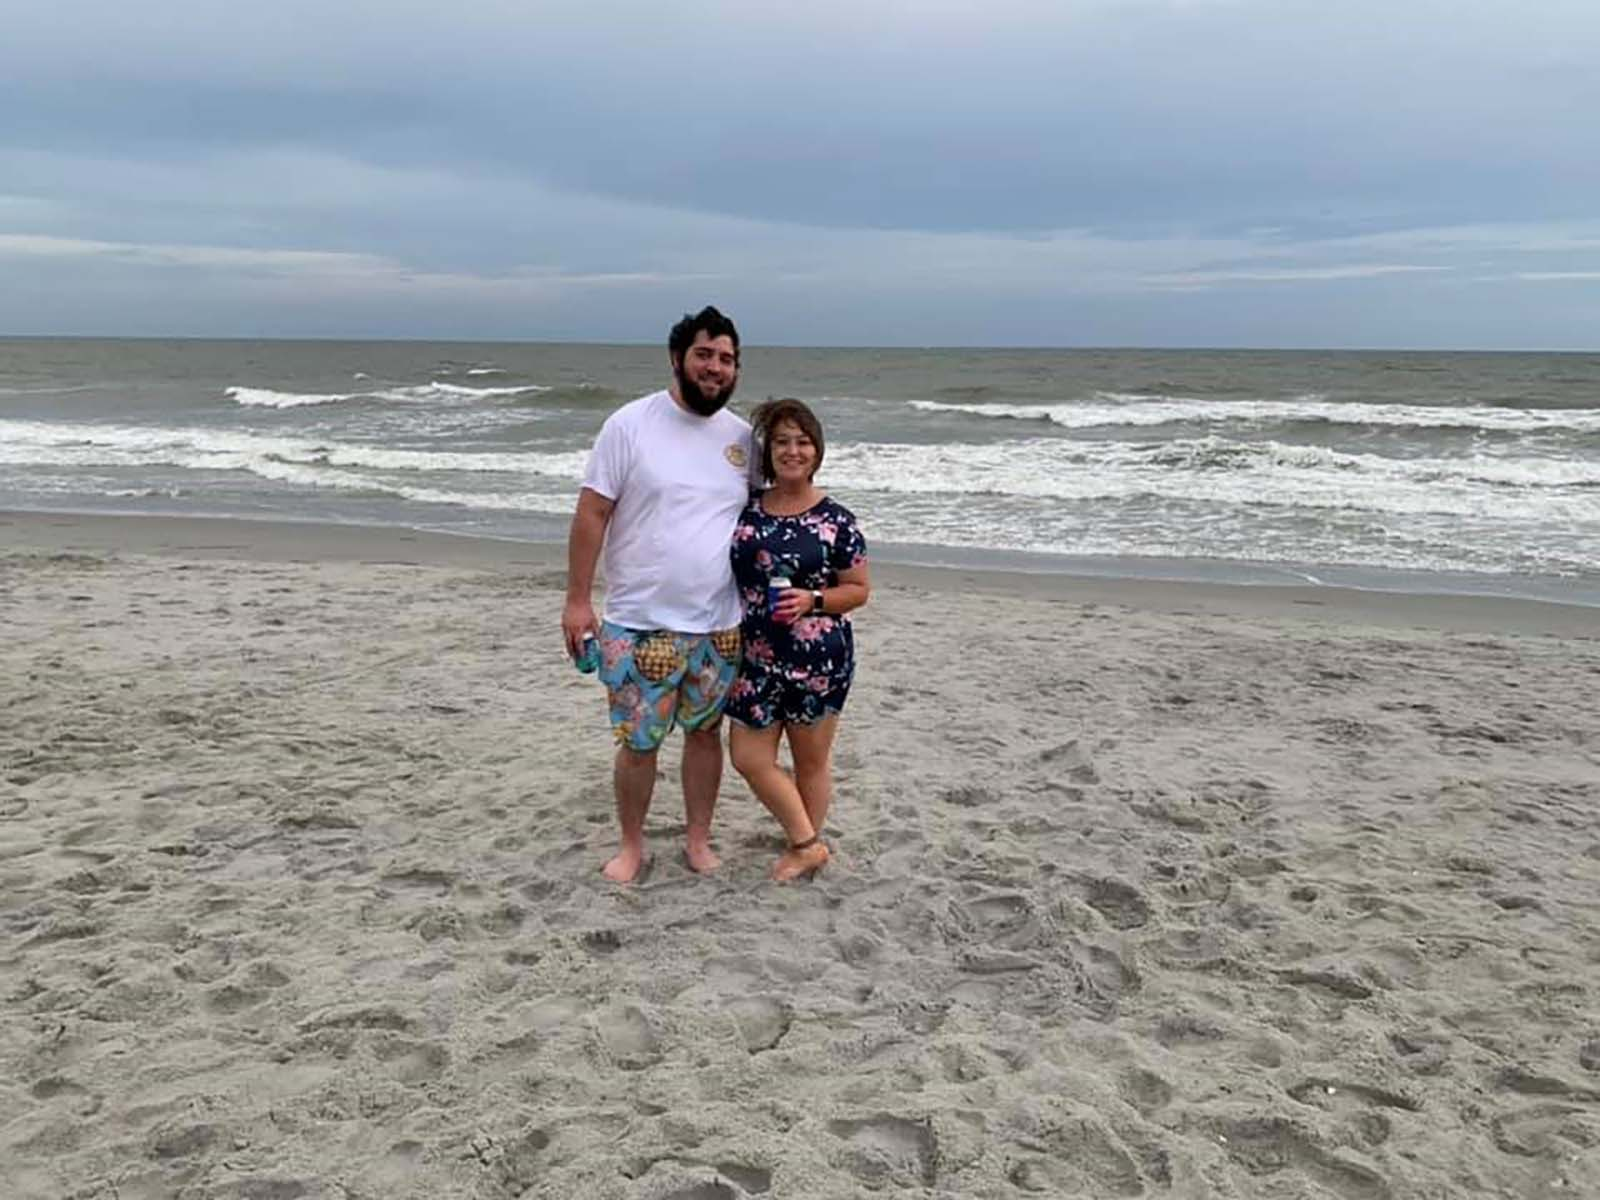 Couple on beach taking picture together